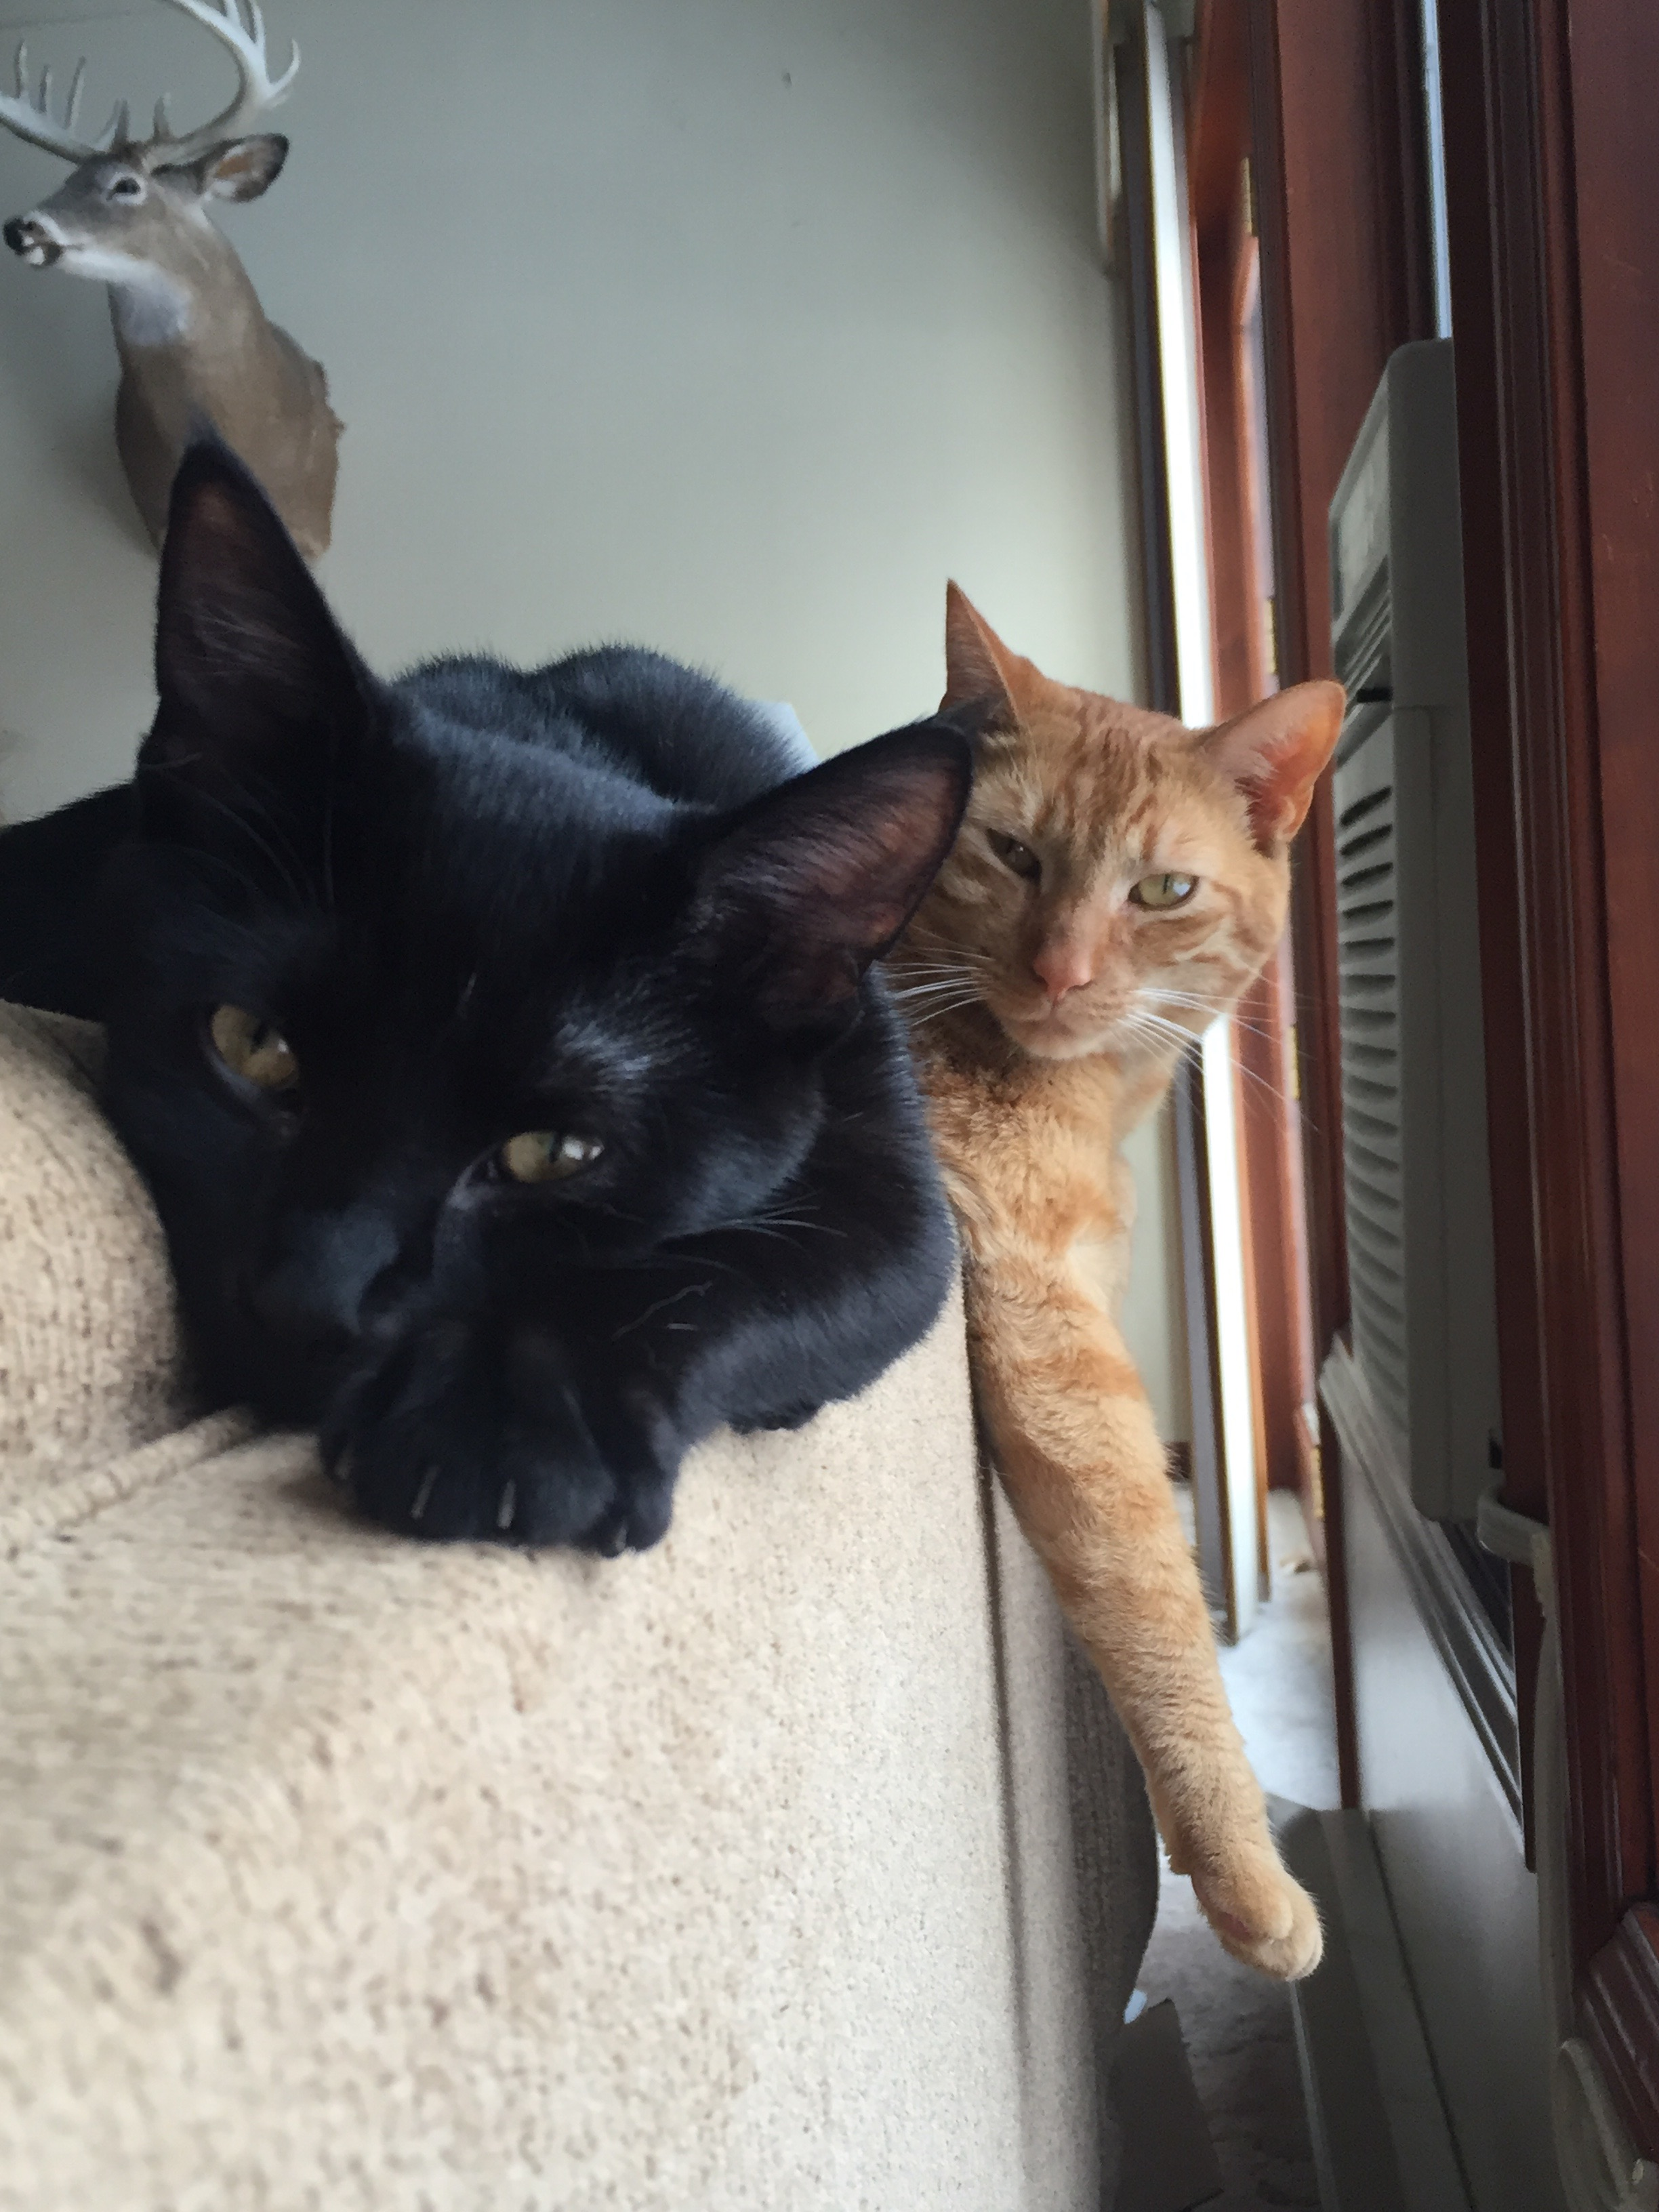 We wanted to update you on Skip (formerly Licorice, bob tail).  He has adjusted so easily to our family.  He's such a purr baby.  He loves Chuck (orange and adopted from you a few years ago).  Sarah